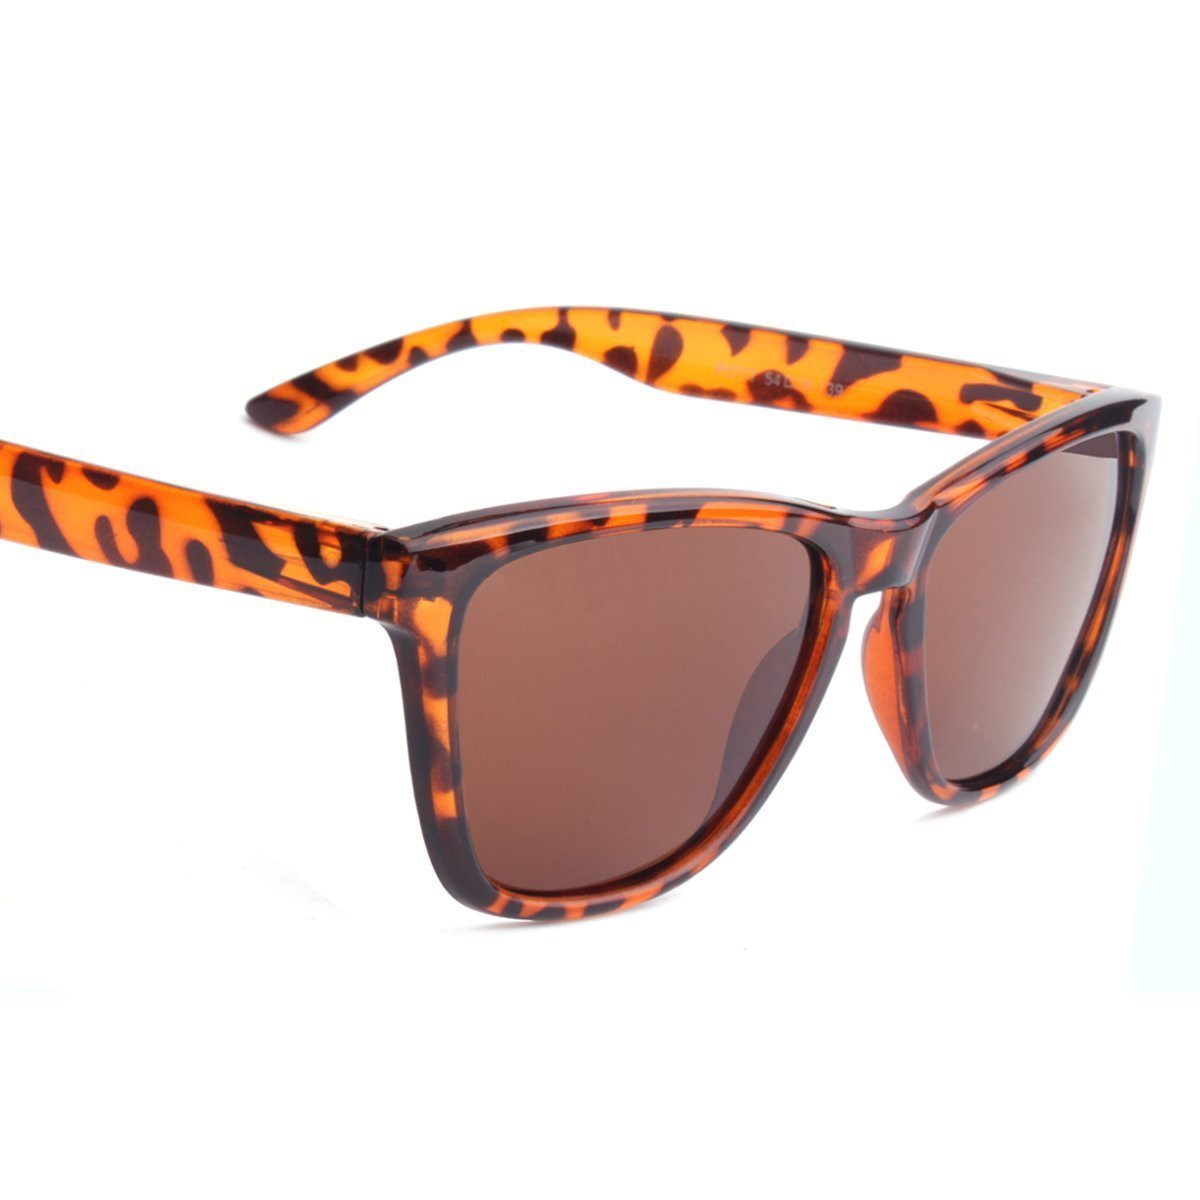 Polarized Sunglasses for Men/Women Gradient Wayfarer Frame - Leopard - Teddith Blue Light Blocking Glasses for Computer Gaming Anti Glare Reduce Eye Strain Screen Glasses